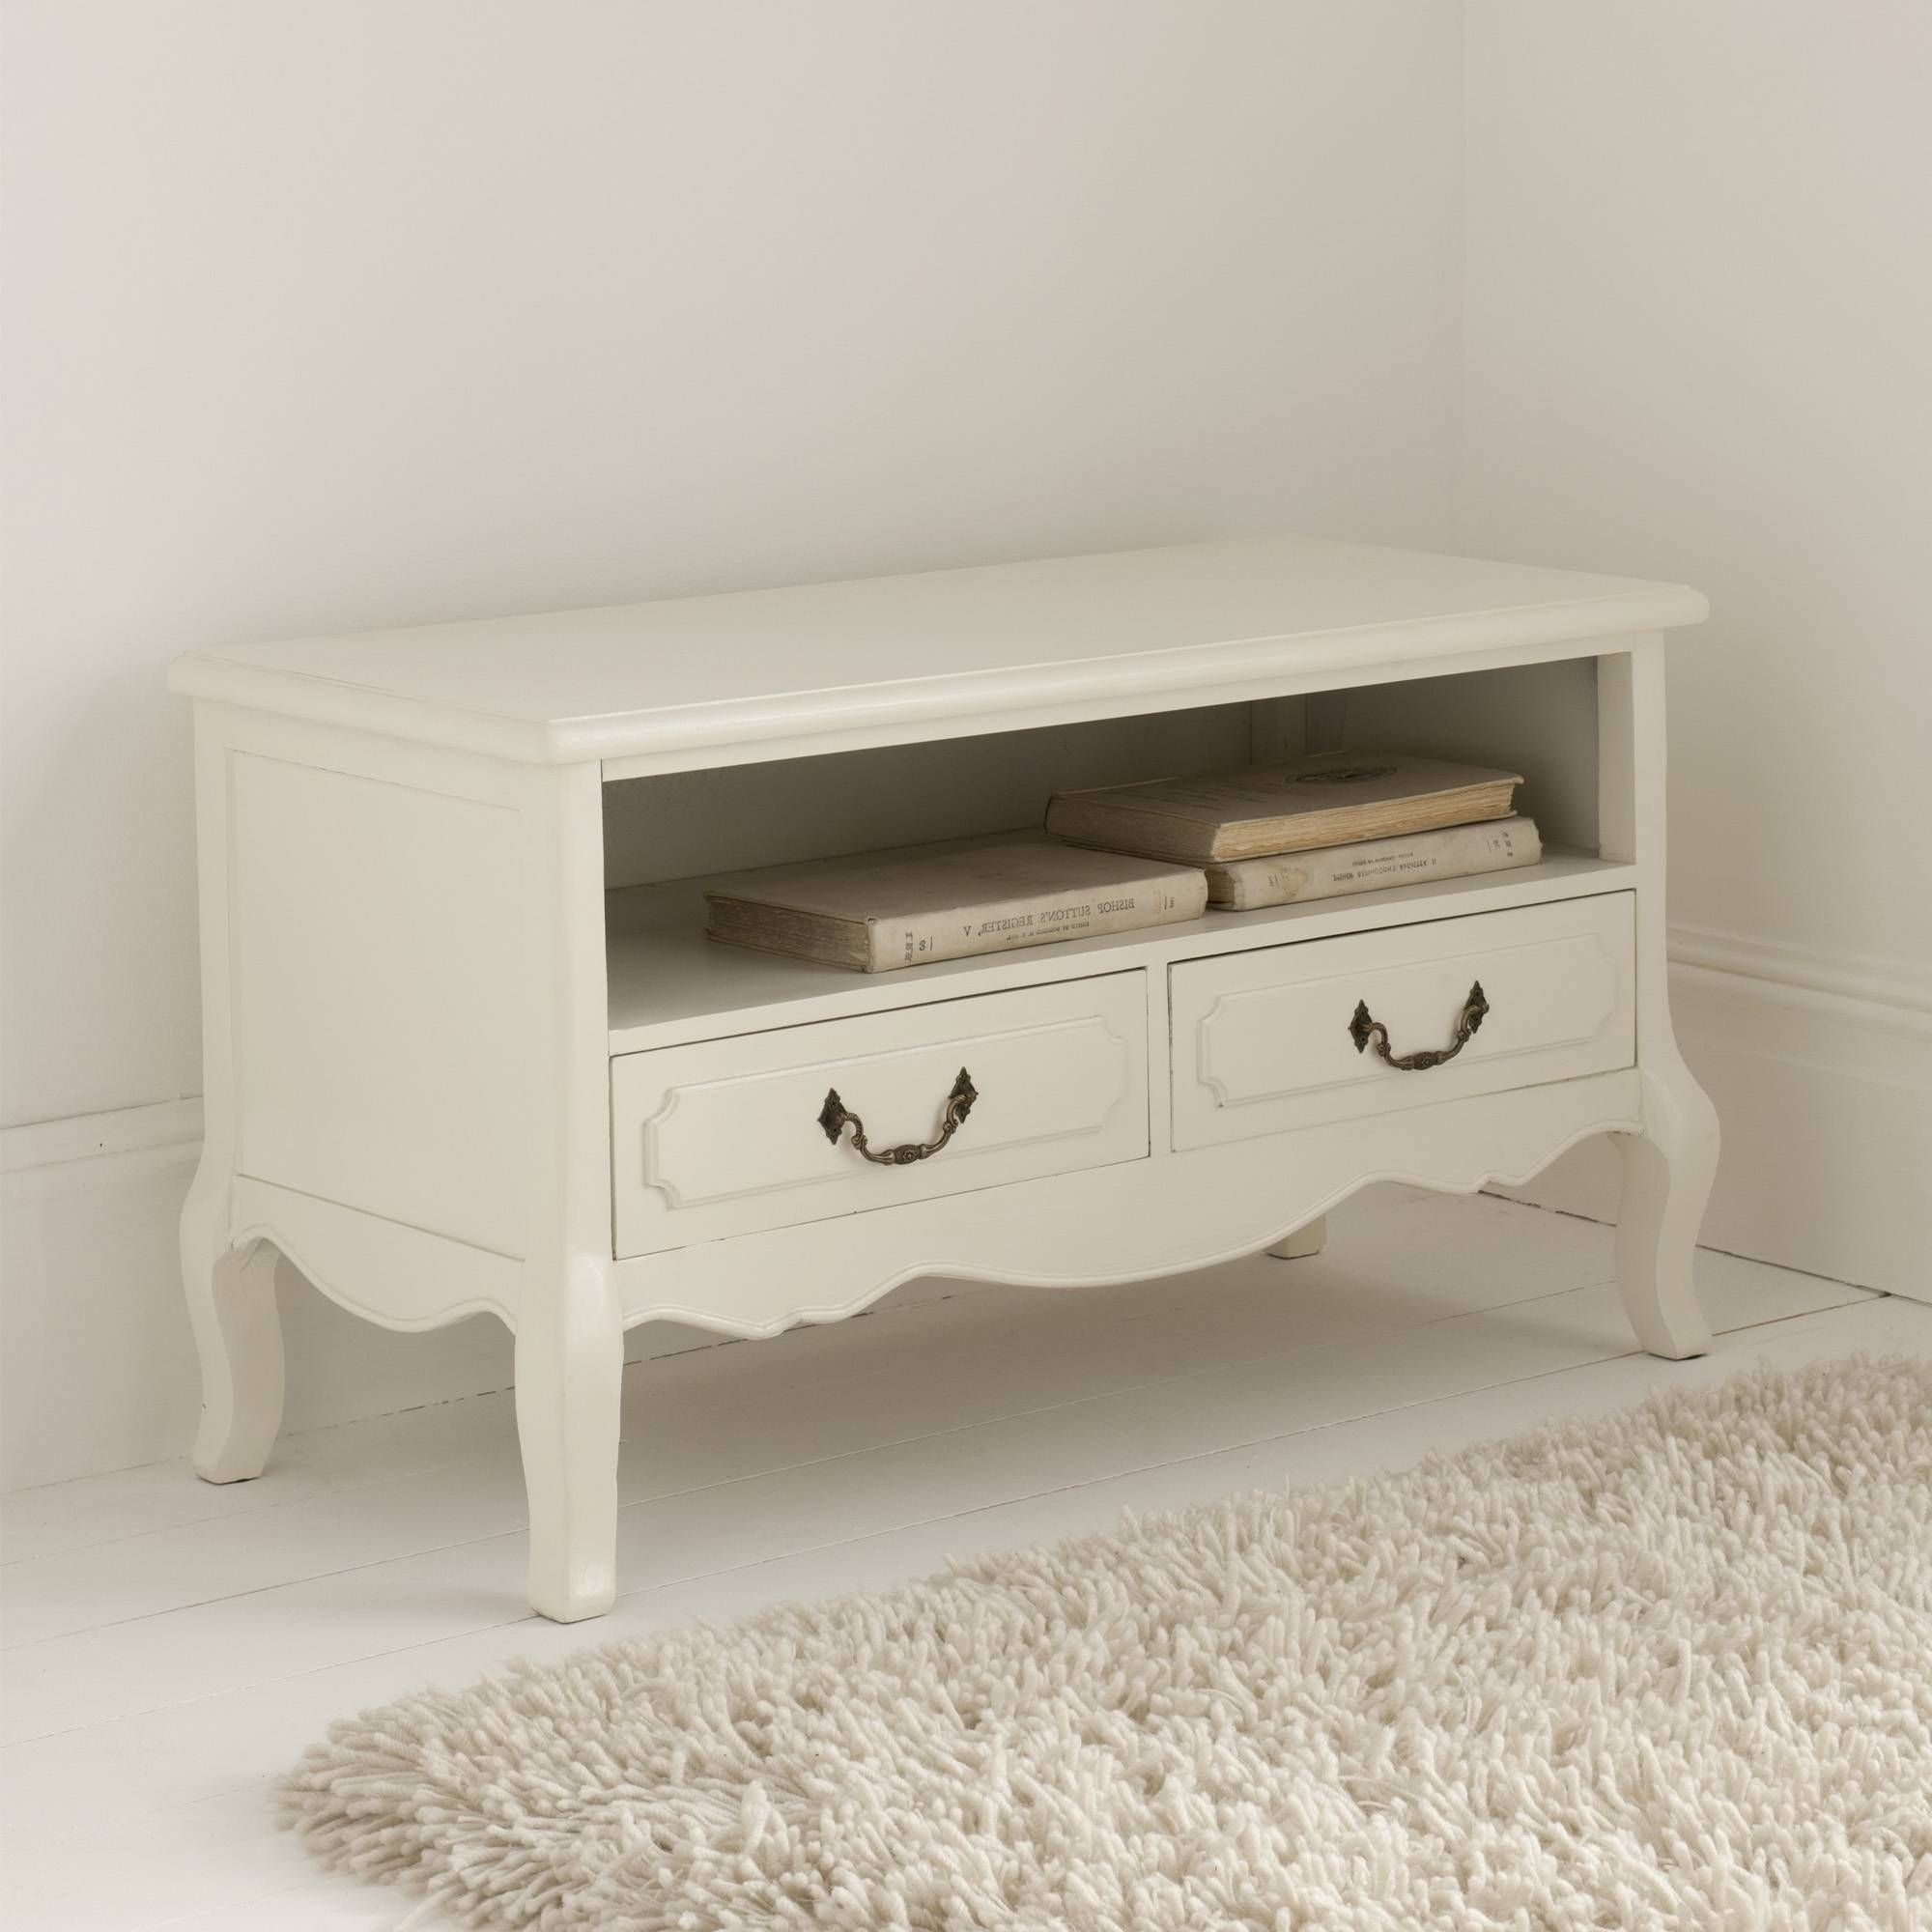 Antique French Tv Stand | Antique White Furniture Range With Shabby Chic Tv Cabinets (View 1 of 15)